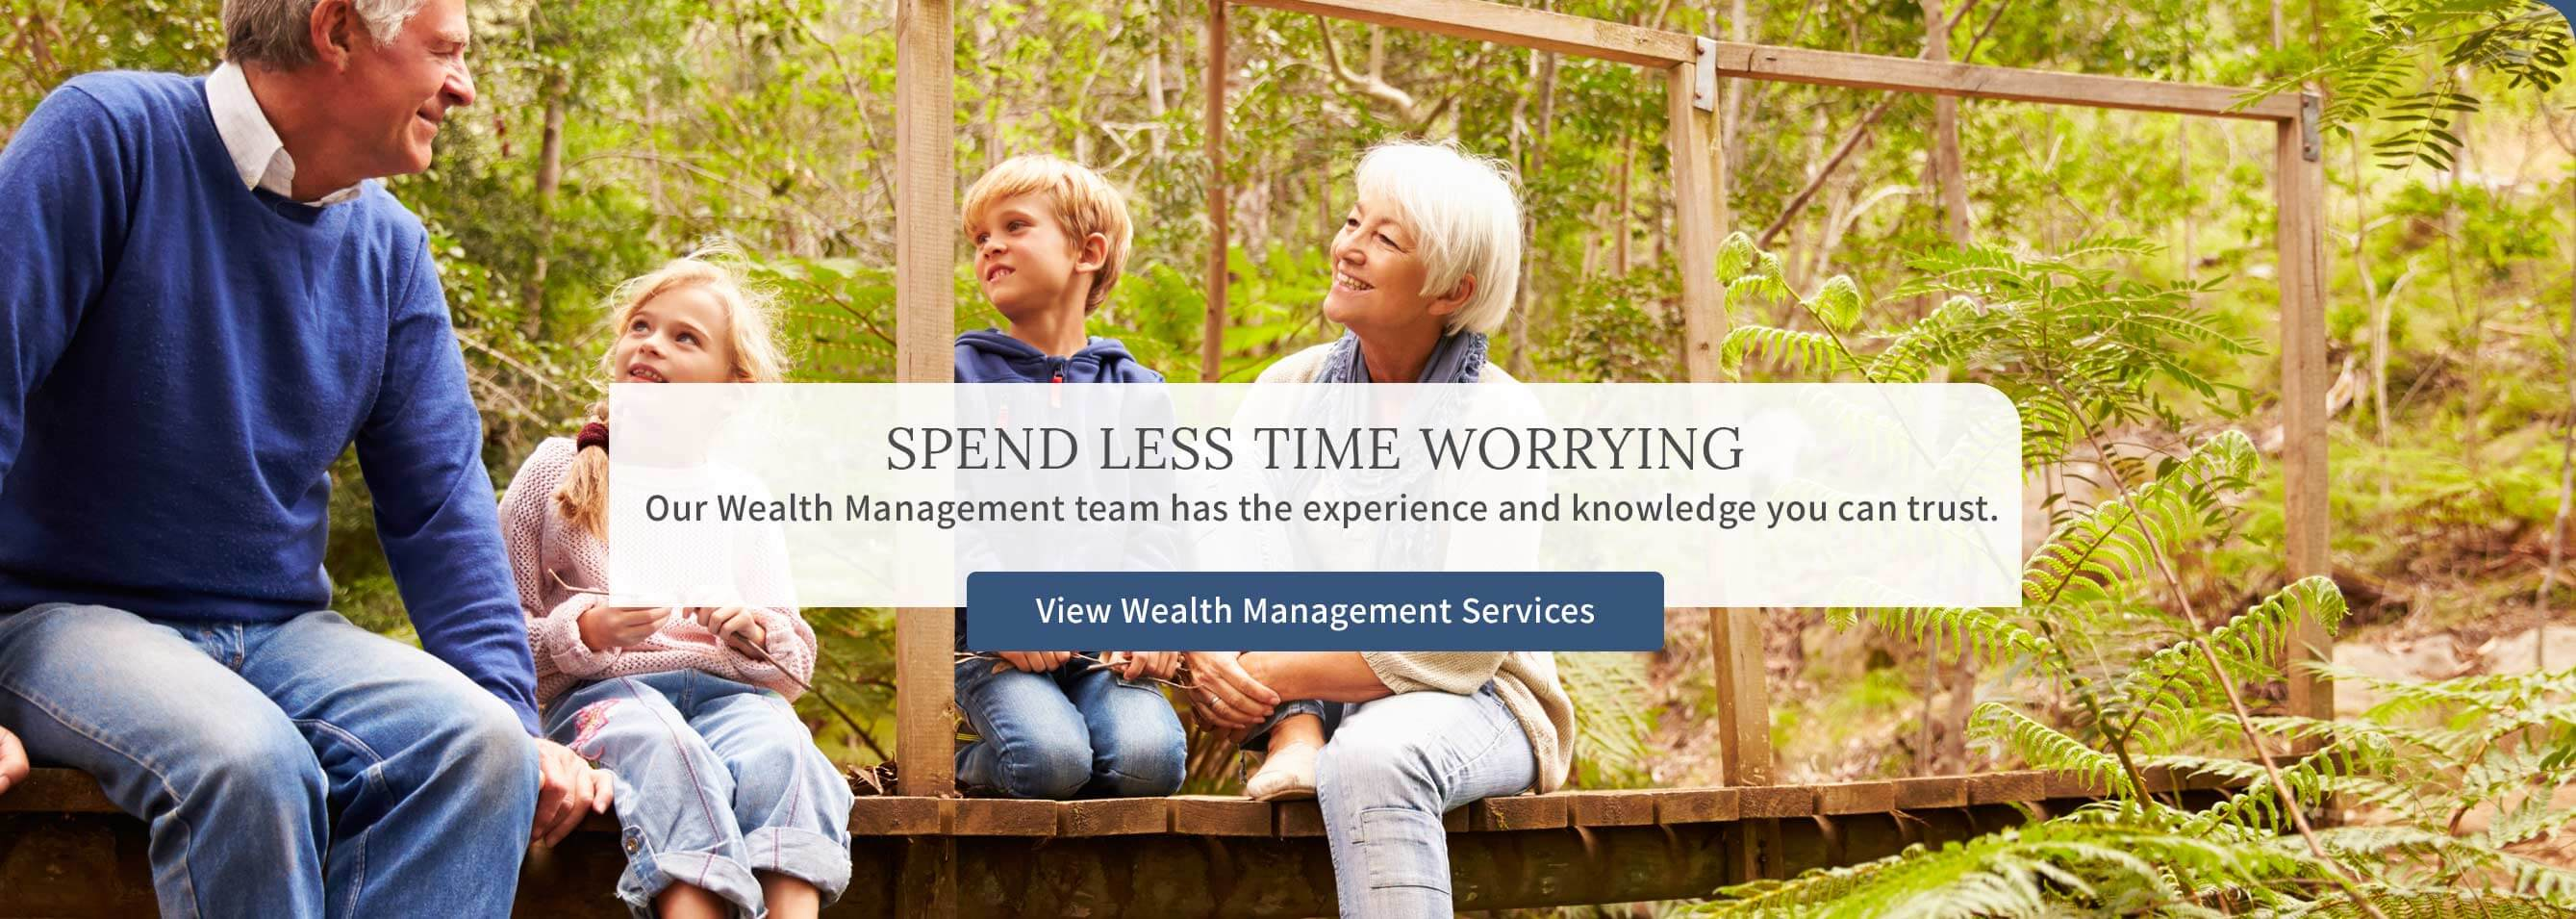 Spend less time worrying. Our Wealth Management team has the experience and  knowledge you can trust. View Wealth Management Services